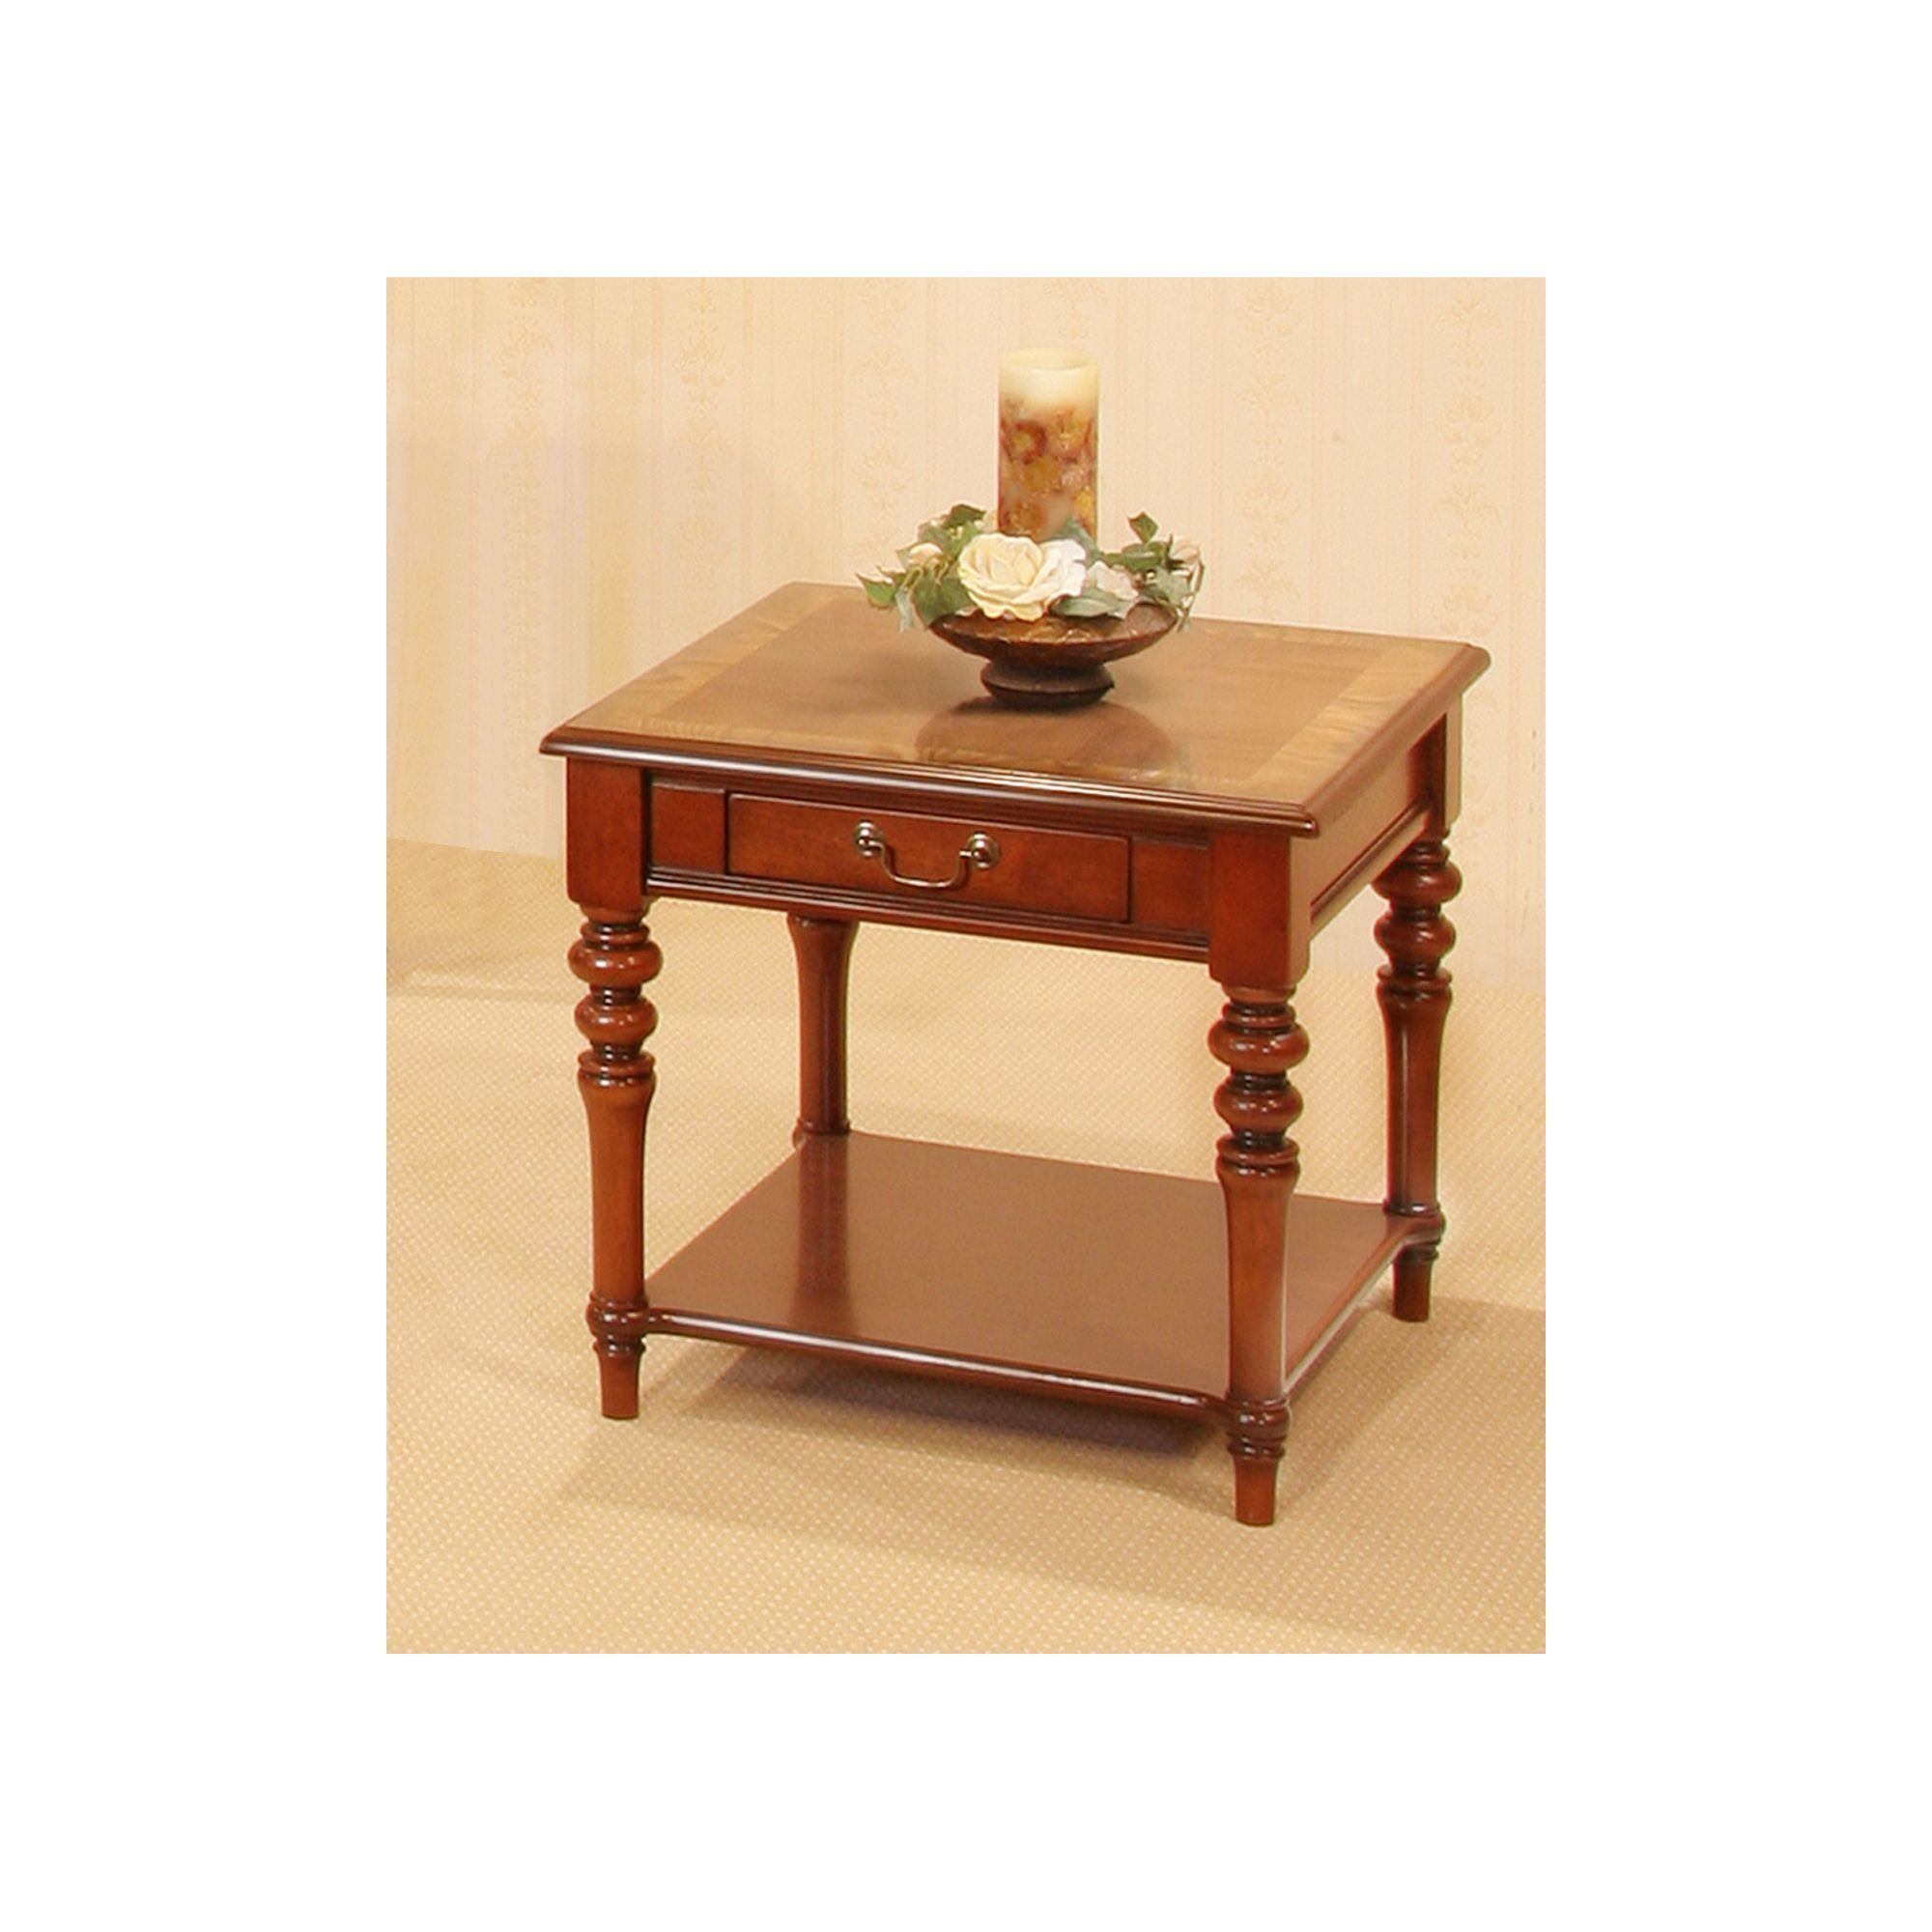 Solway Furniture Aspen Lamp Table in Mahogany and Ash (Set of 2) at Tescos Direct